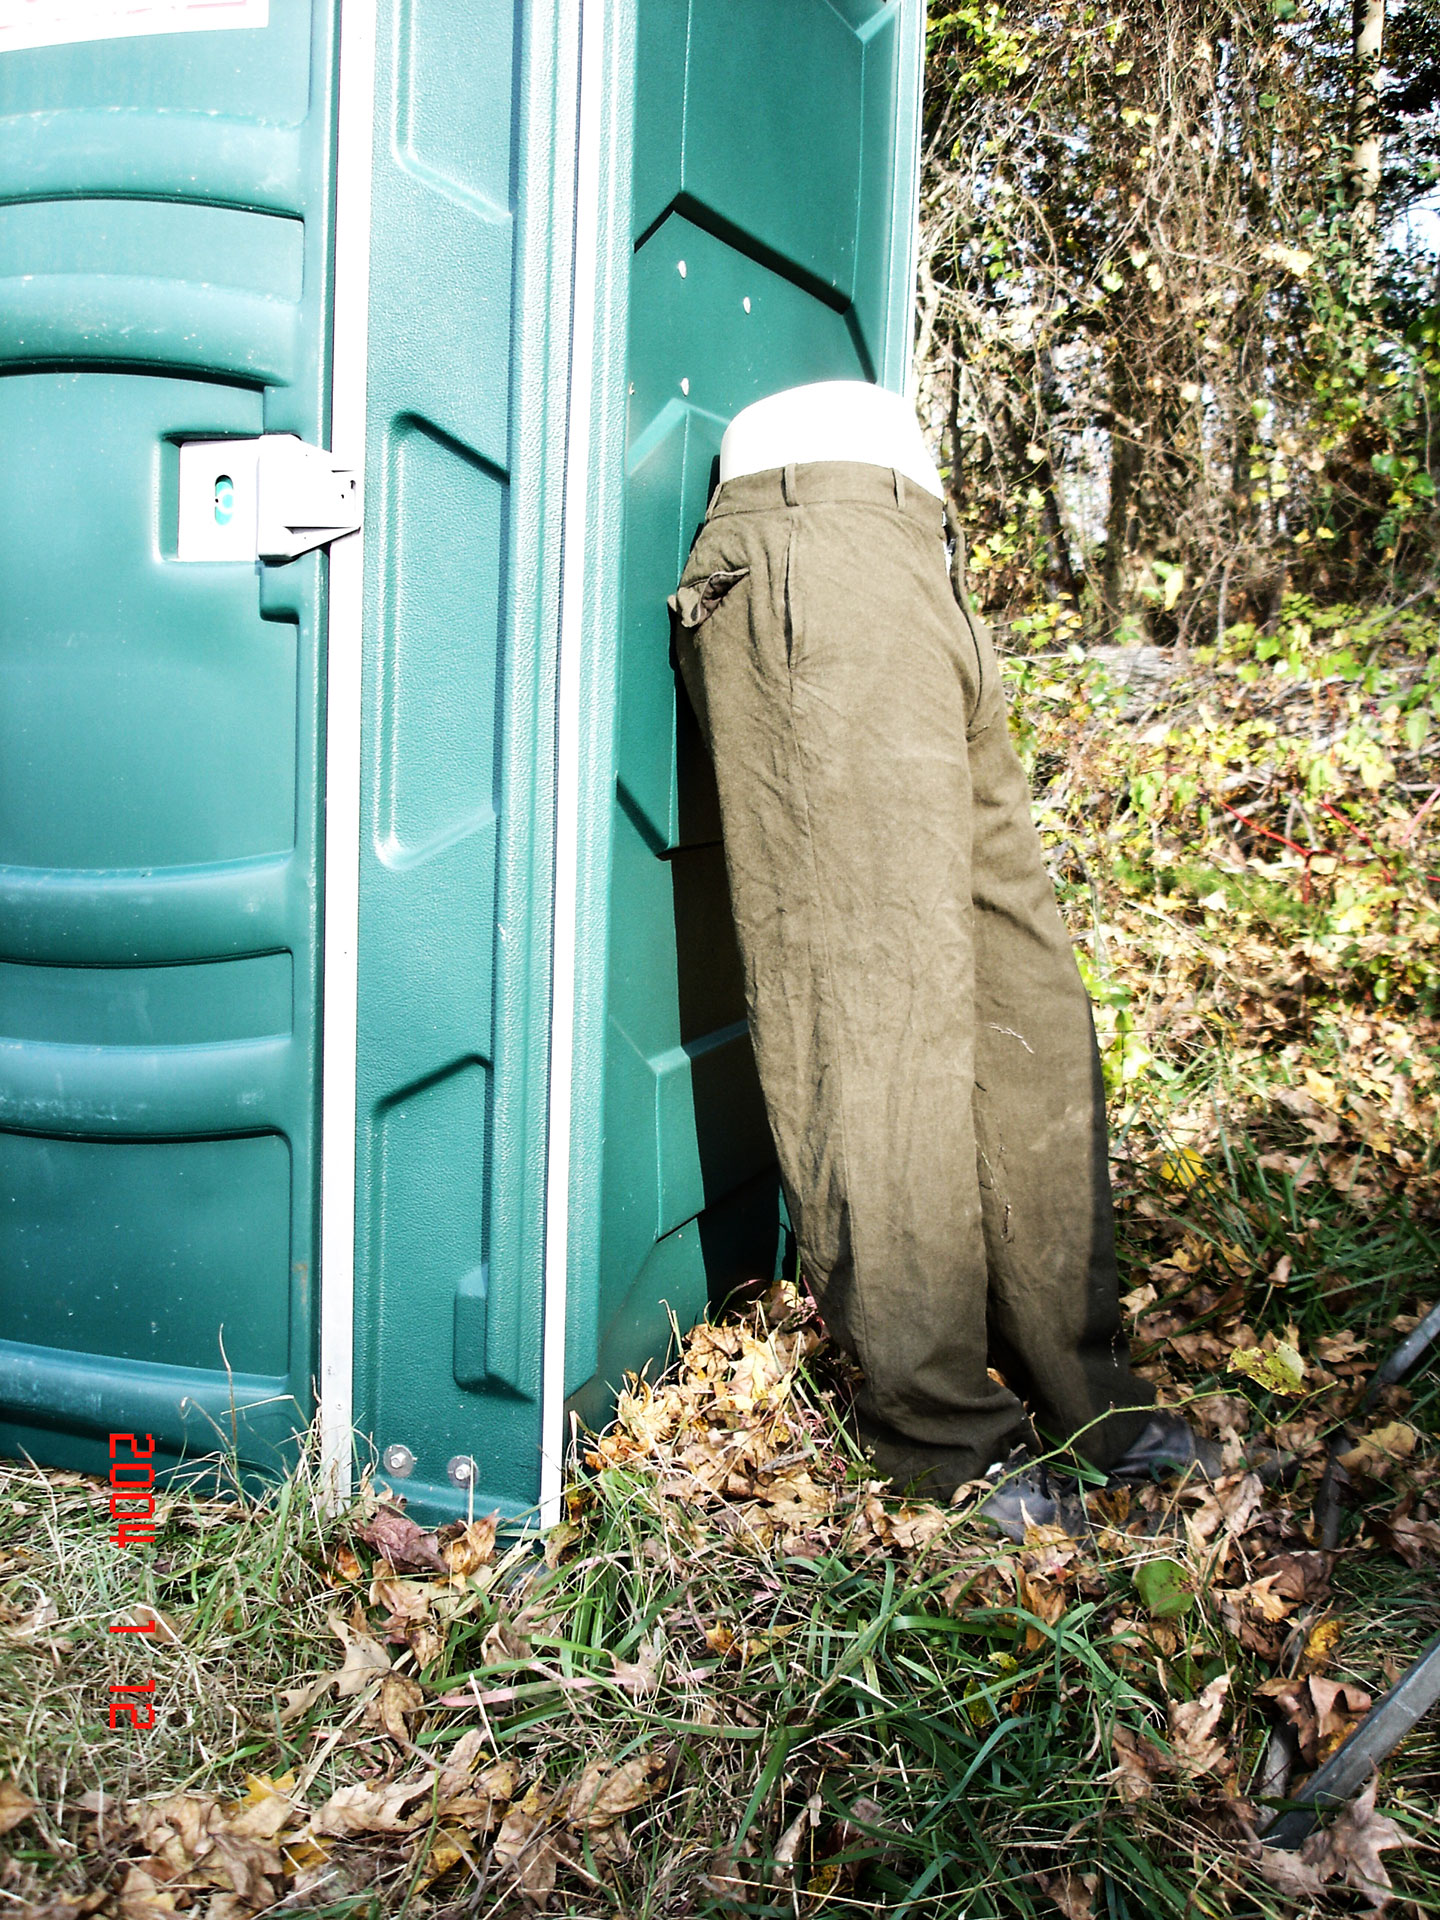 Rudy-Poe-LibertyBTS-pants-outhouse-1920-web.jpg